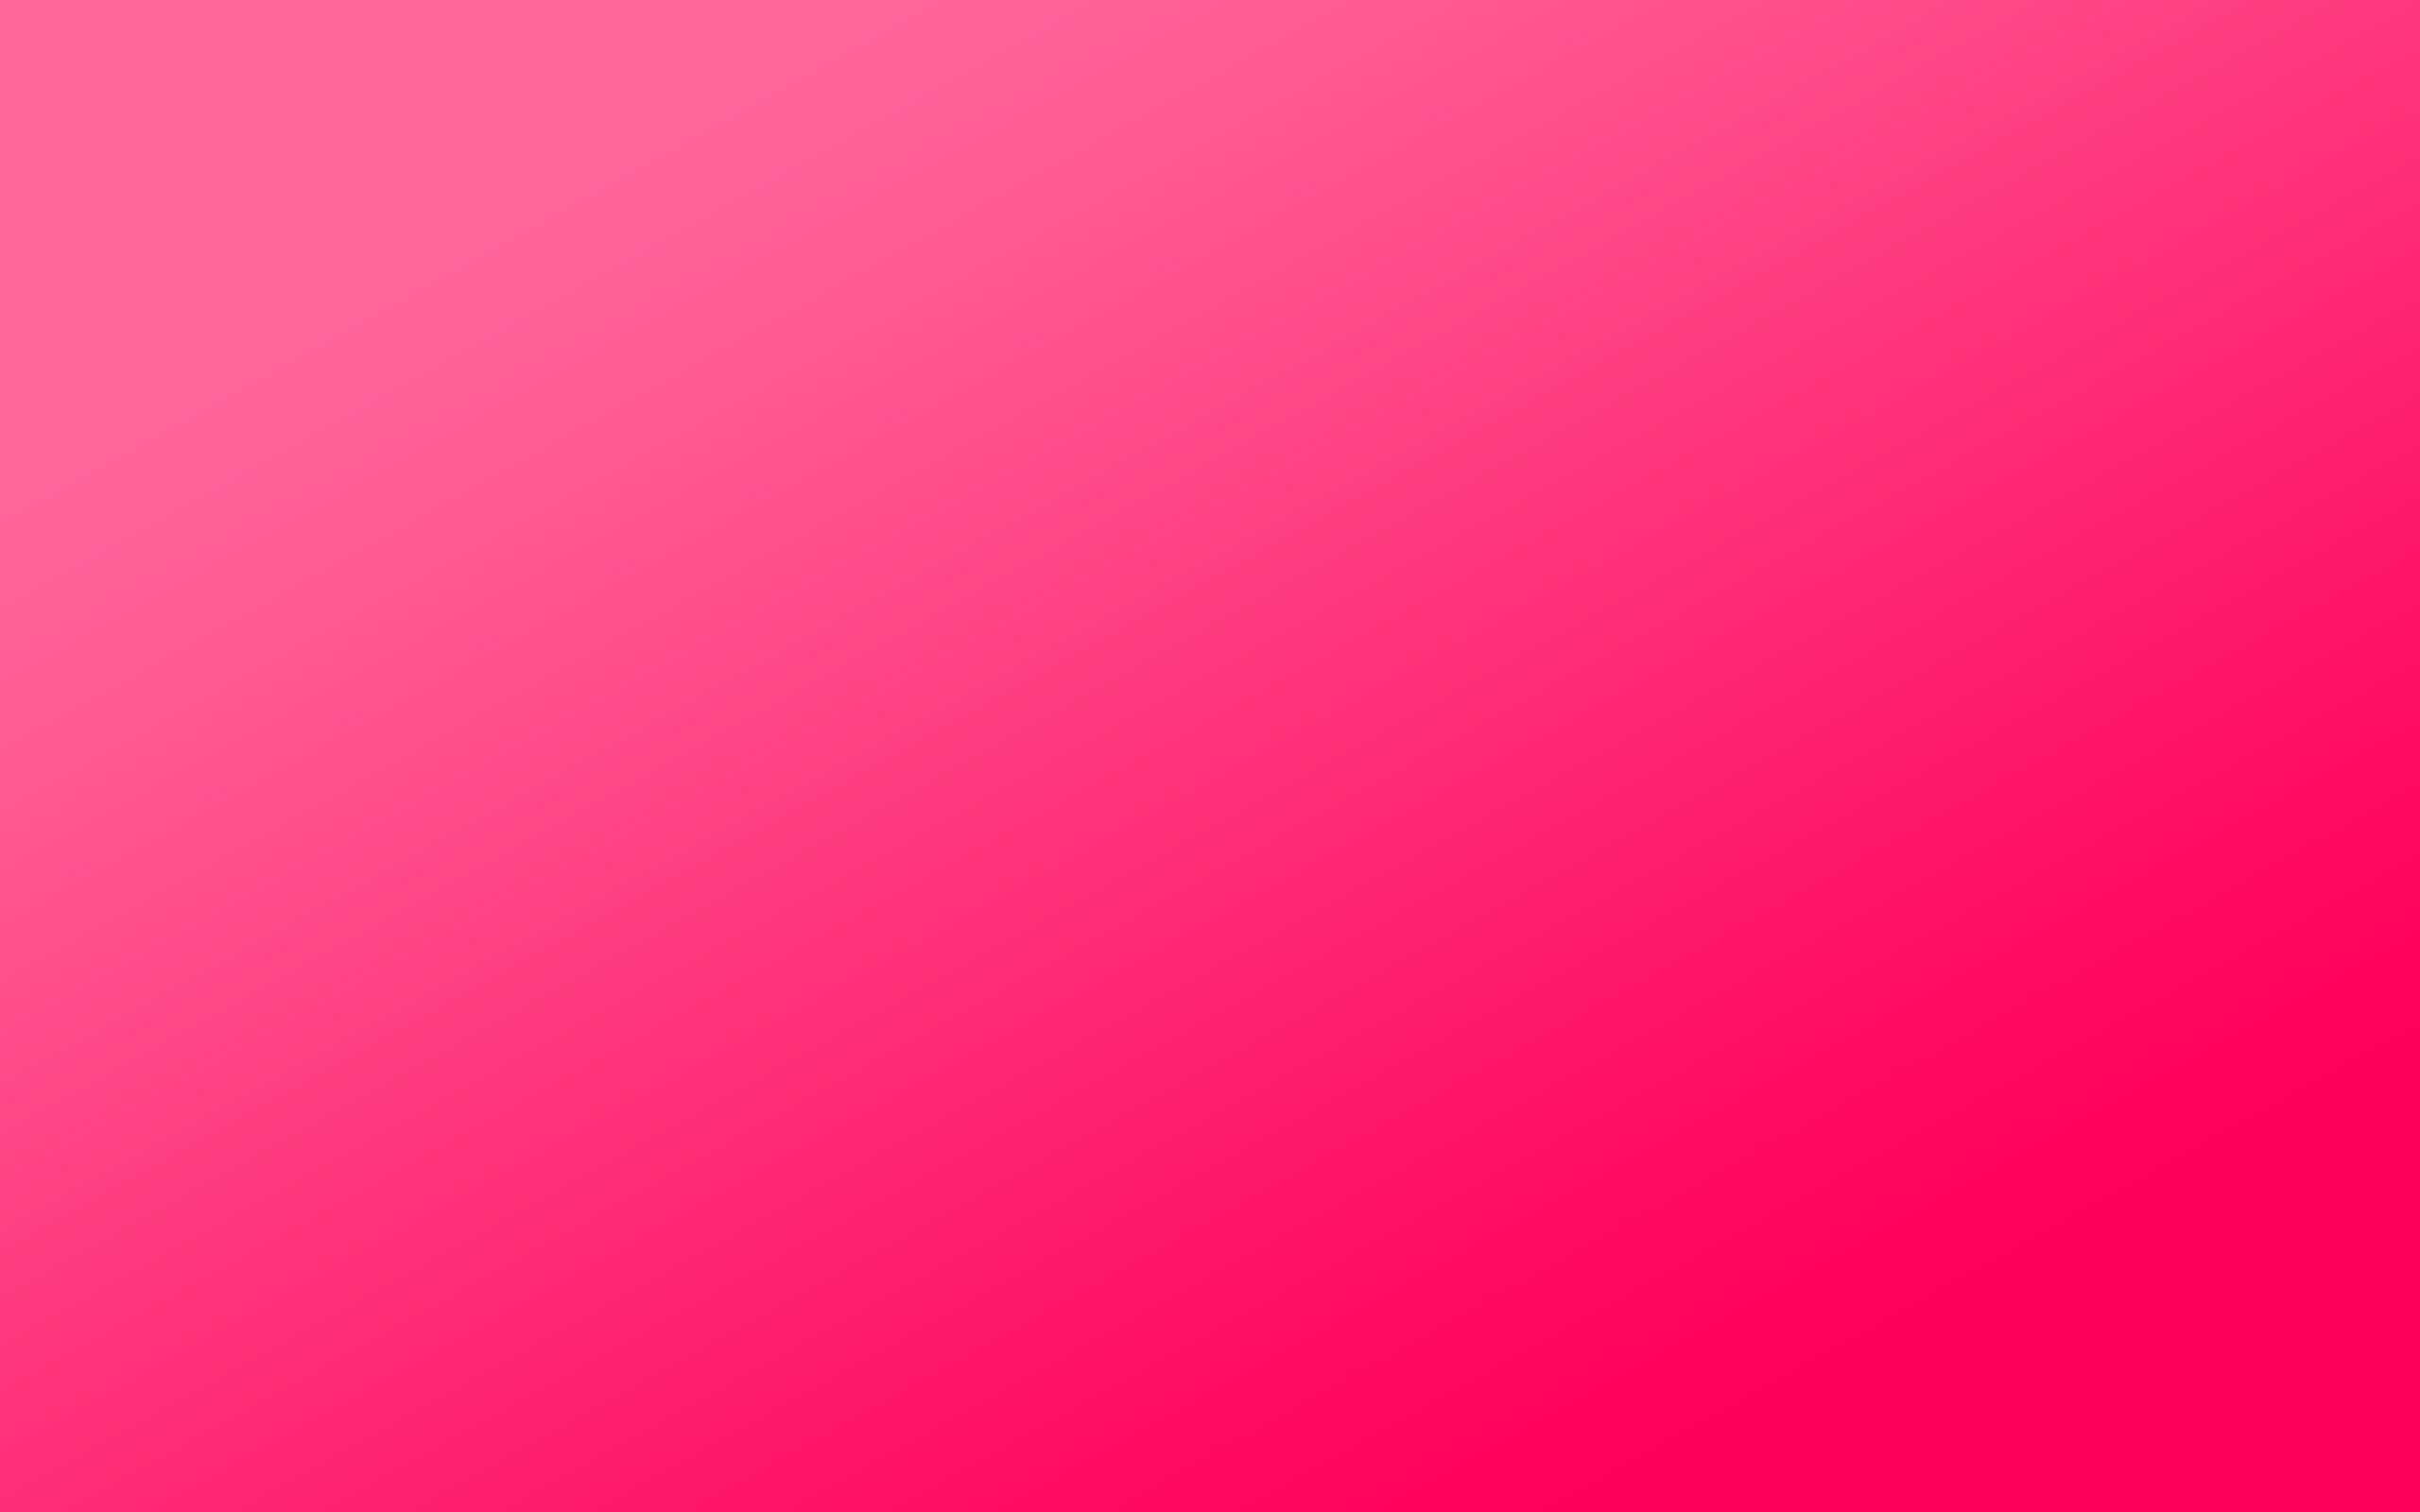 Pink Full HD Wallpaper